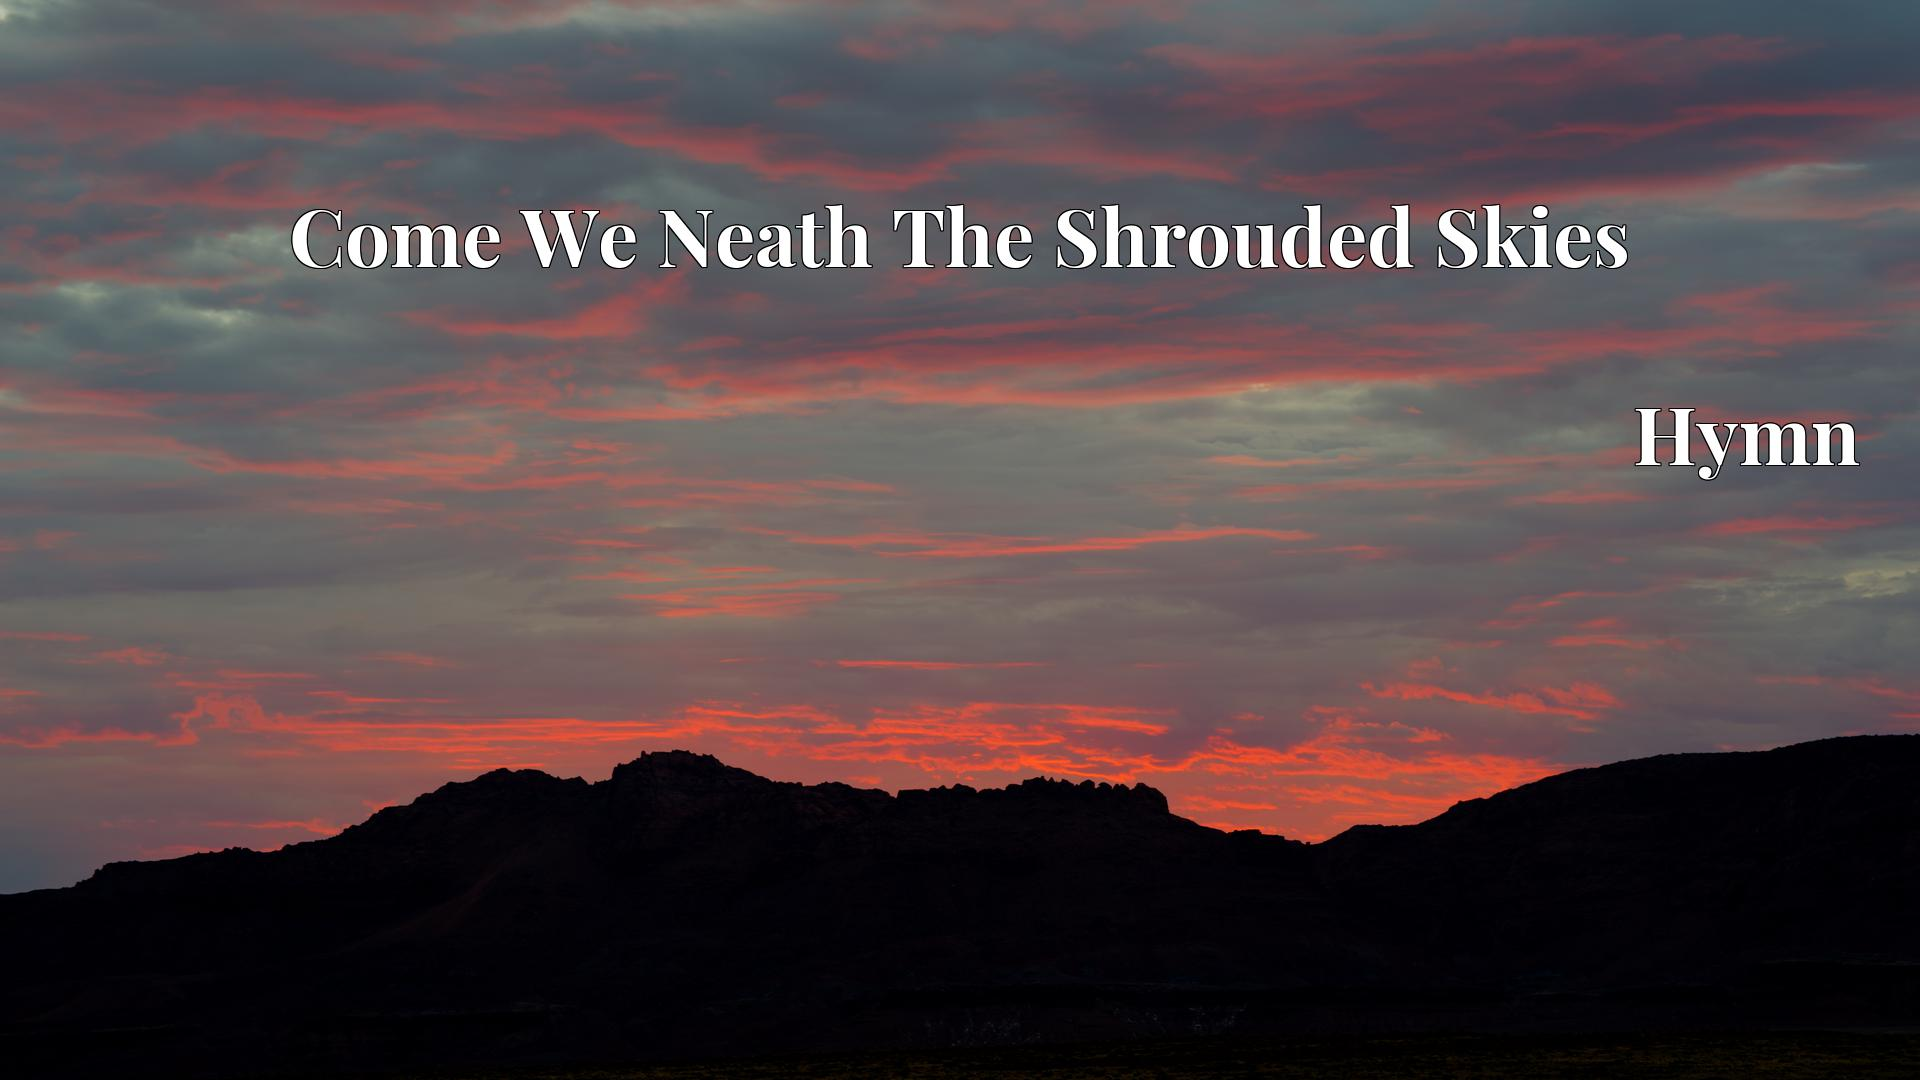 Come We Neath The Shrouded Skies - Hymn